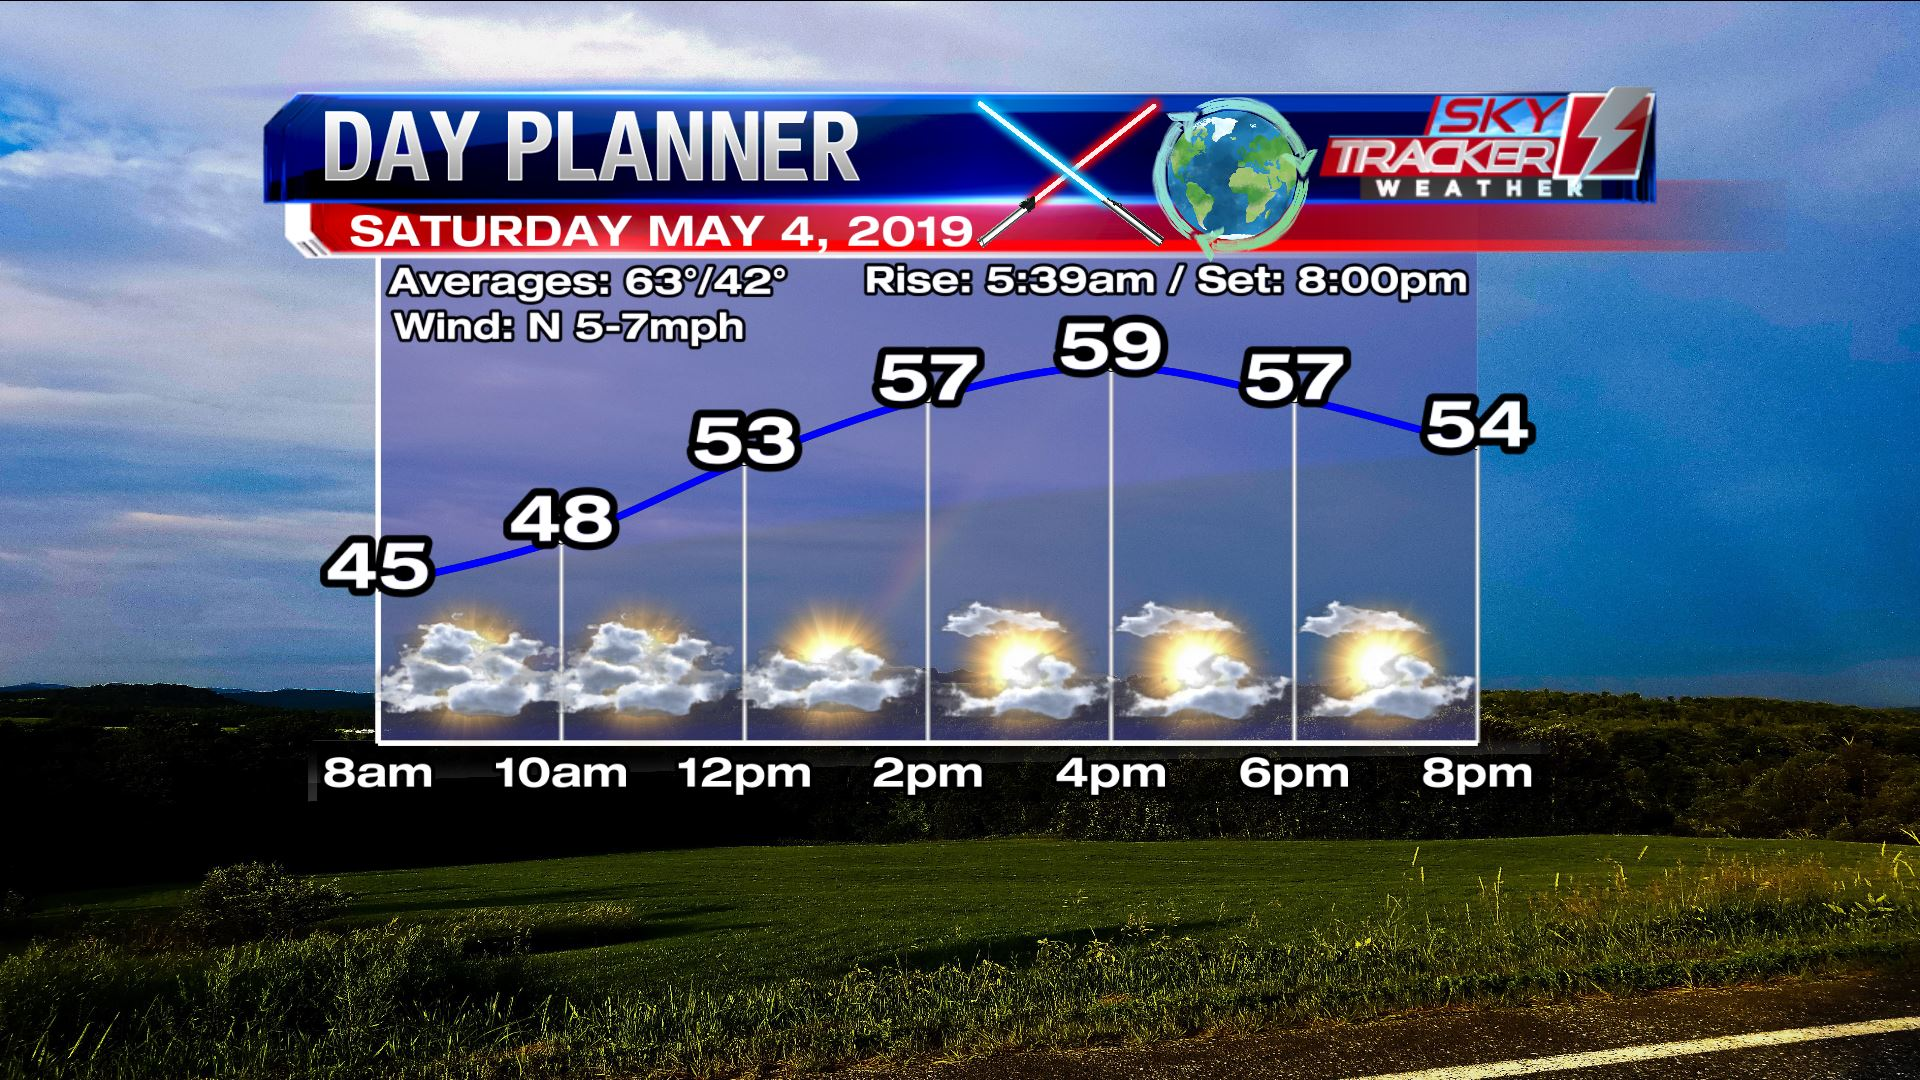 Planner for Saturday May 4 2019